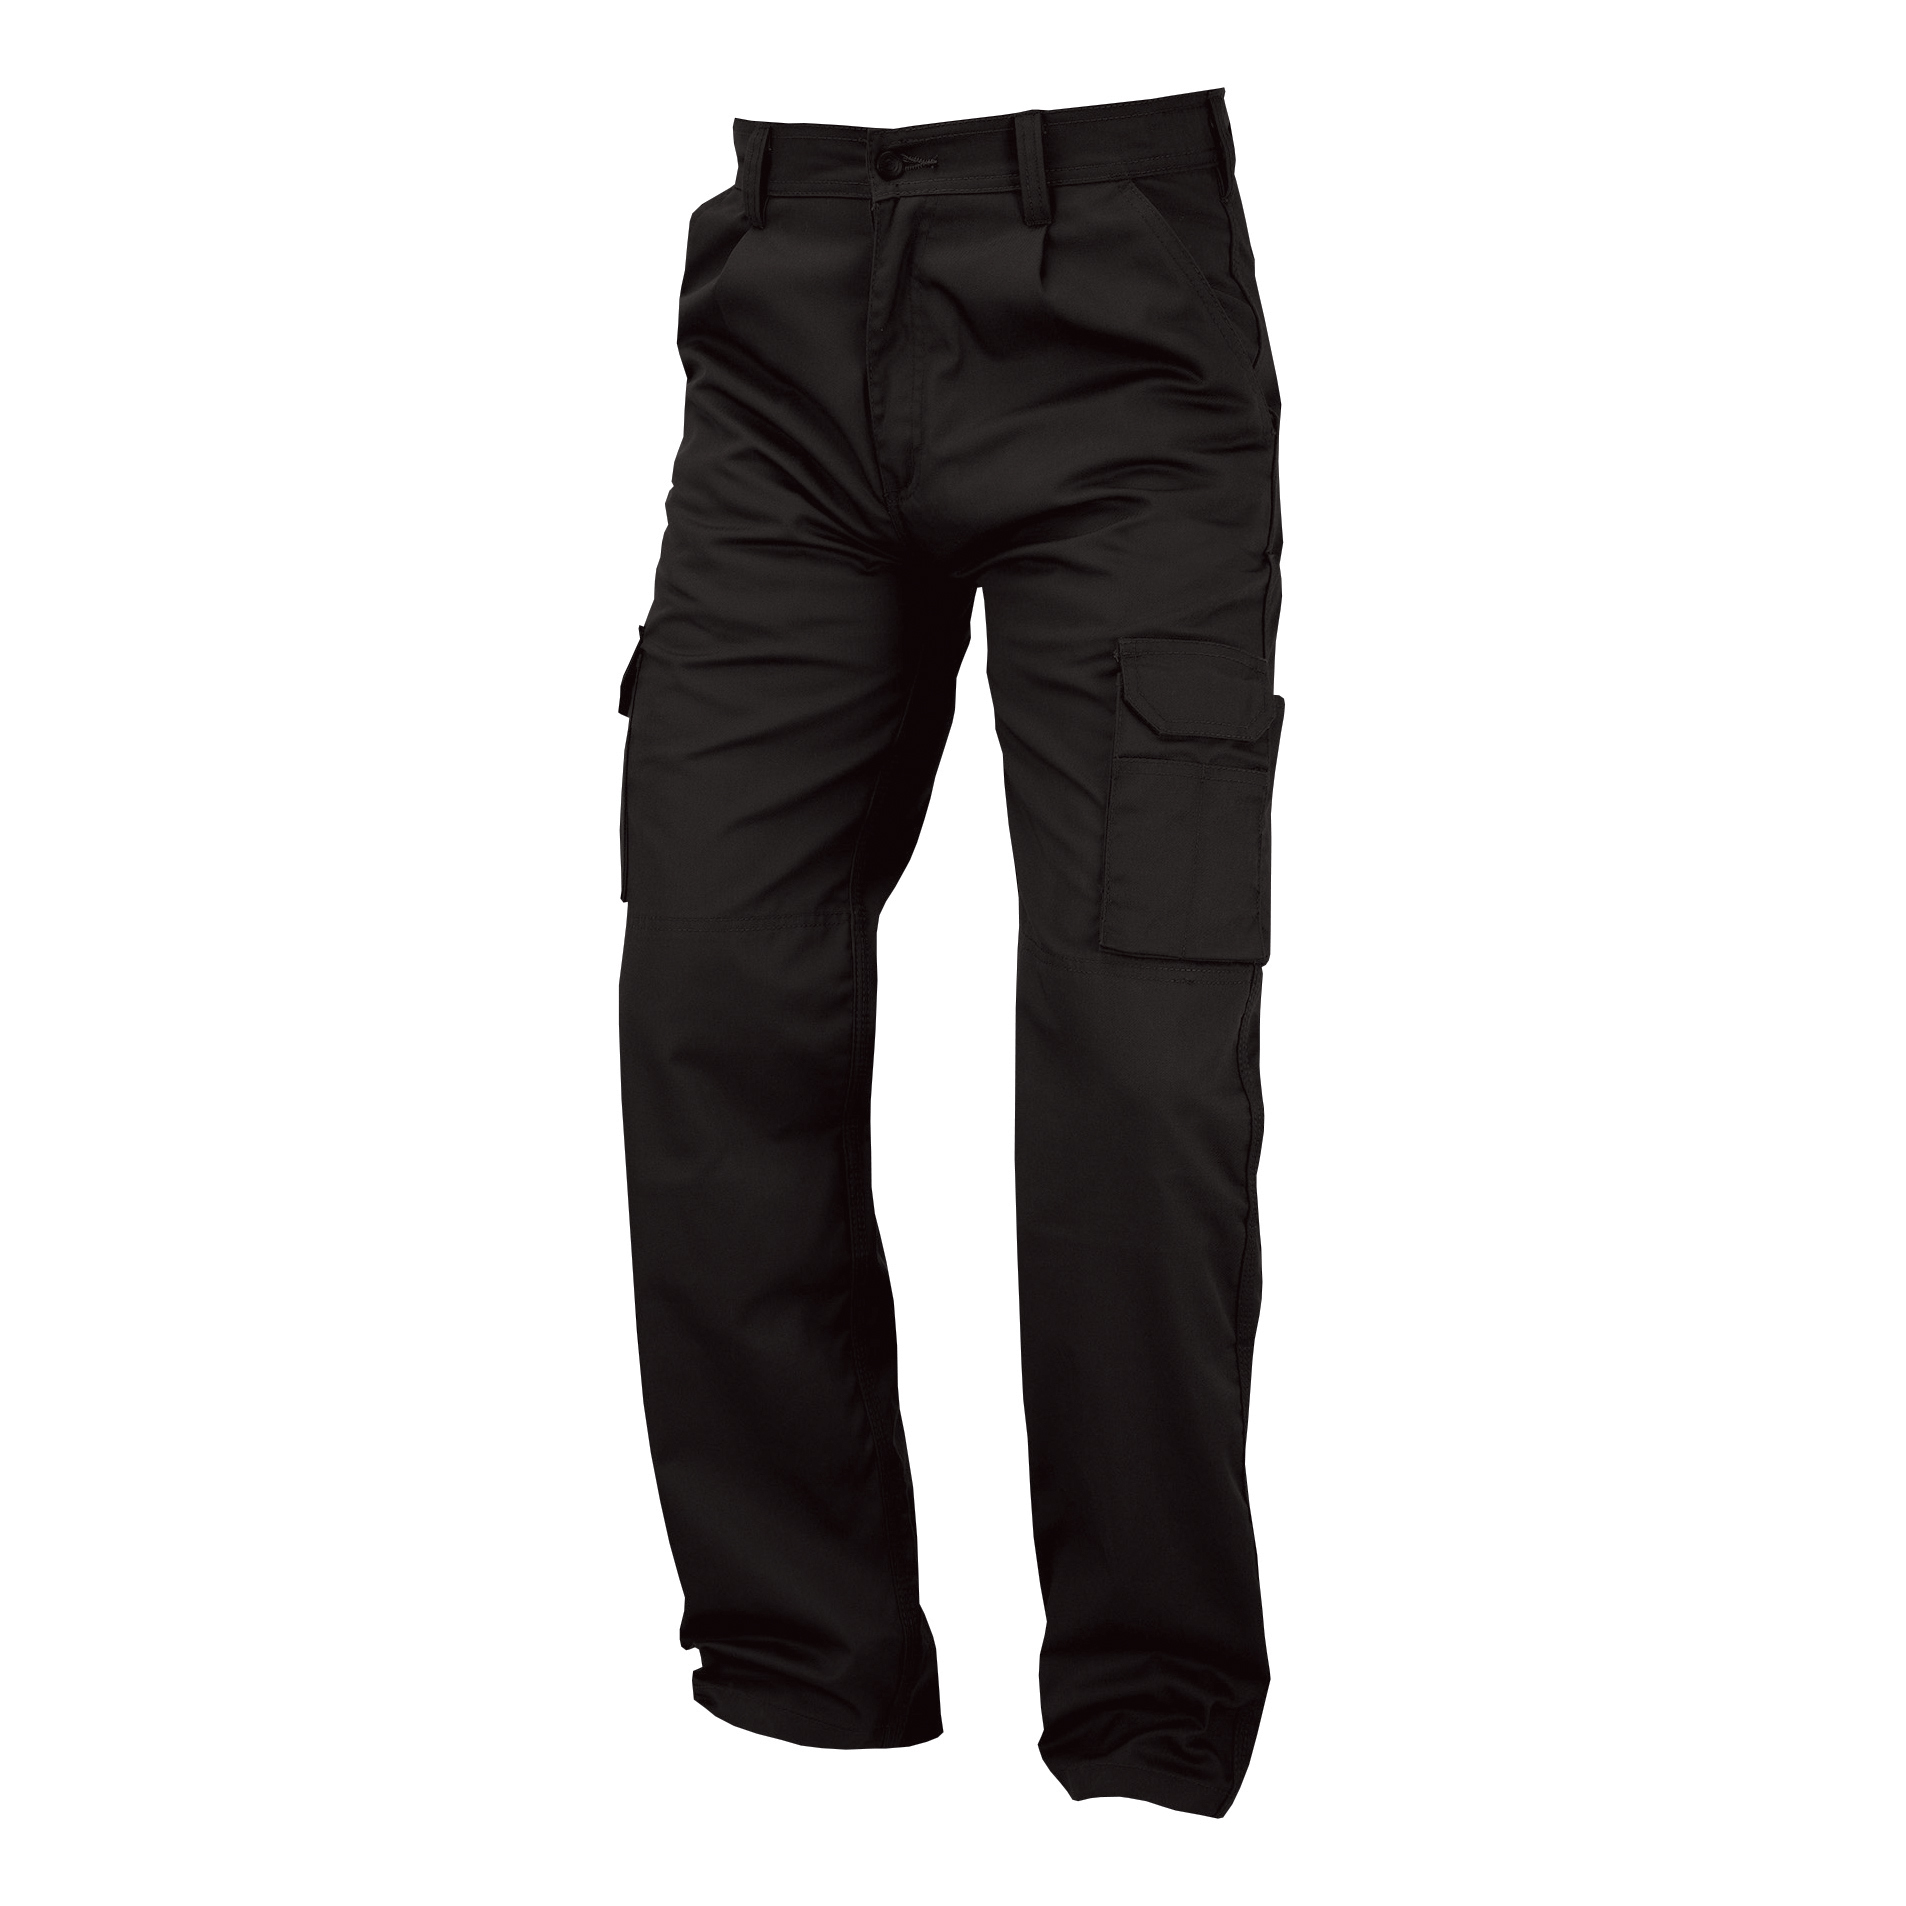 Combat Trousers Polycotton with Pockets 34in Regular Black Ref PCTHWBL34 1-3 Days Lead Time